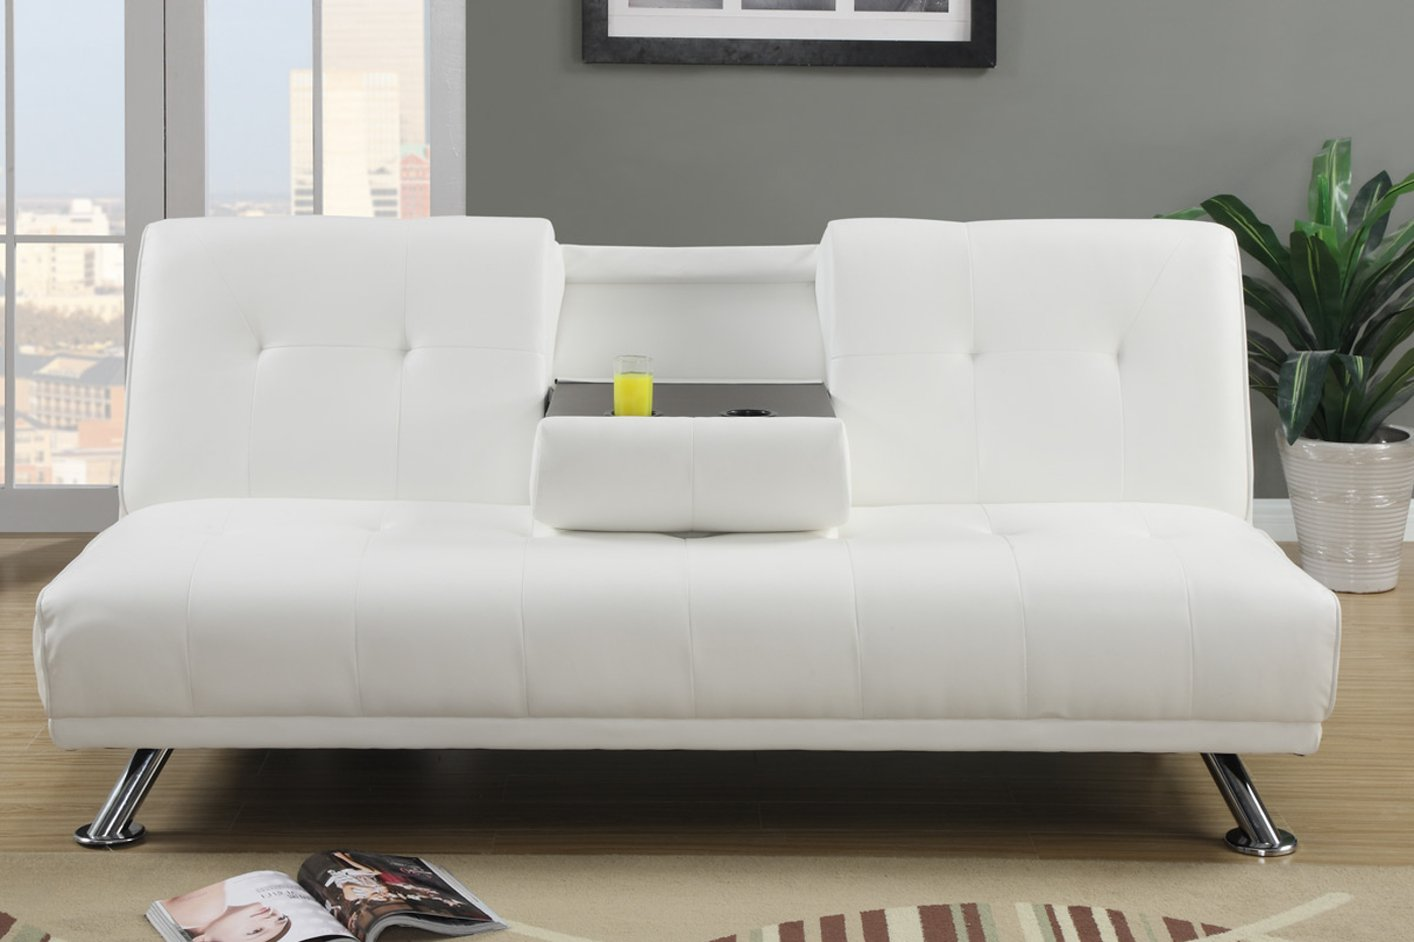 stealasofa reviews nice sofa sets designs white leather twin size bed steal a furniture